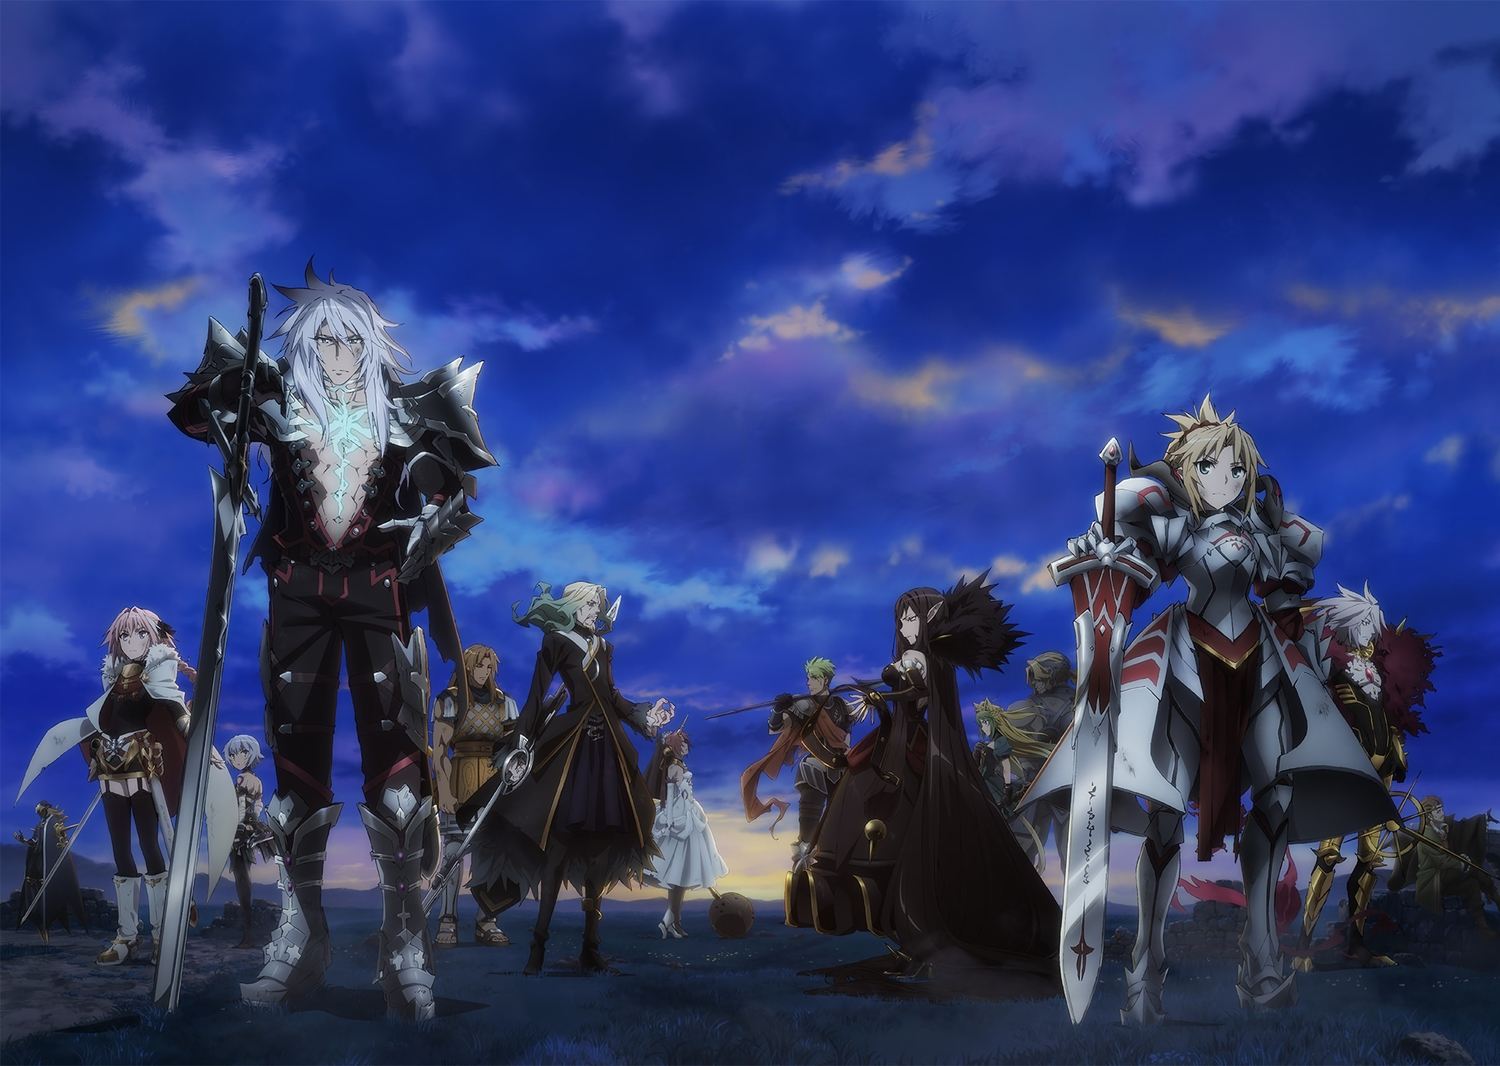 achilles animal_ears armor astolfo atalanta_(fate) blonde_hair boots braids chiron clouds fate/apocrypha fate_(series) frankenstein garter_belt grass gray_hair jack_the_ripper karna long_hair male mordred pink_eyes pink_hair ponytail semiramis short_hair siegfried sky solomon_ibn_gabirol spartacus sword tagme_(artist) tail trap vlad_the_impaler weapon william_shakespeare